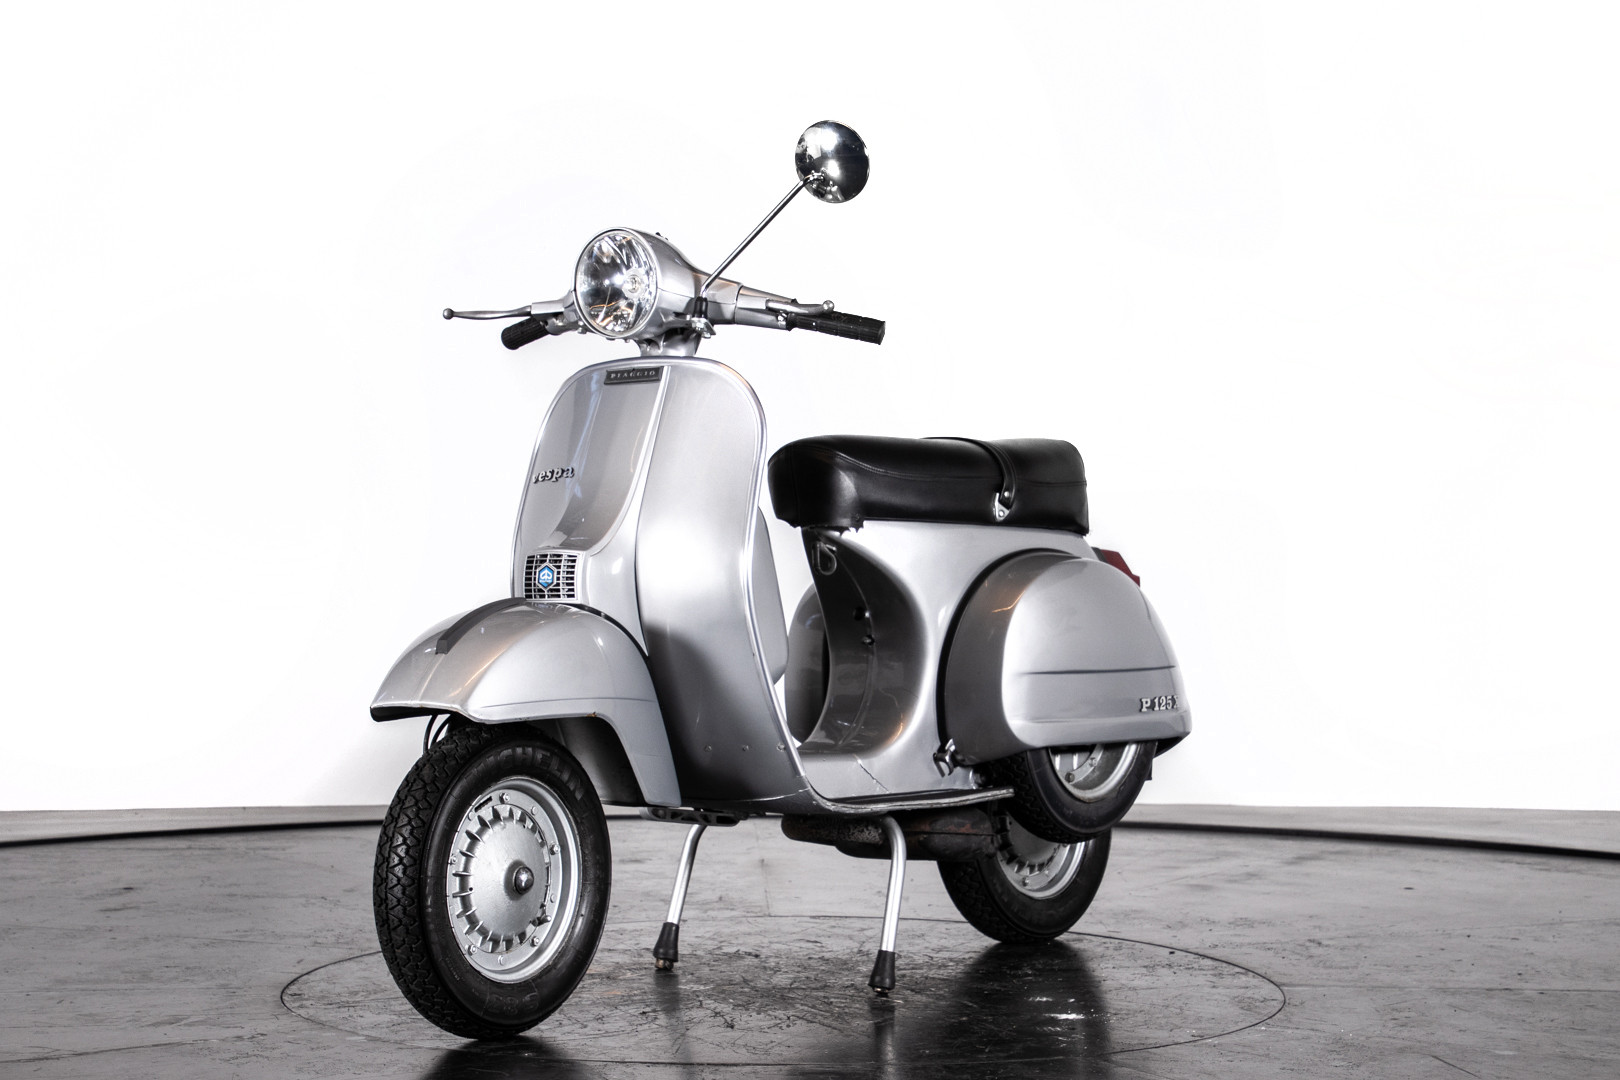 Vespa P 125 X, 1978 - The PX marked a new step forward